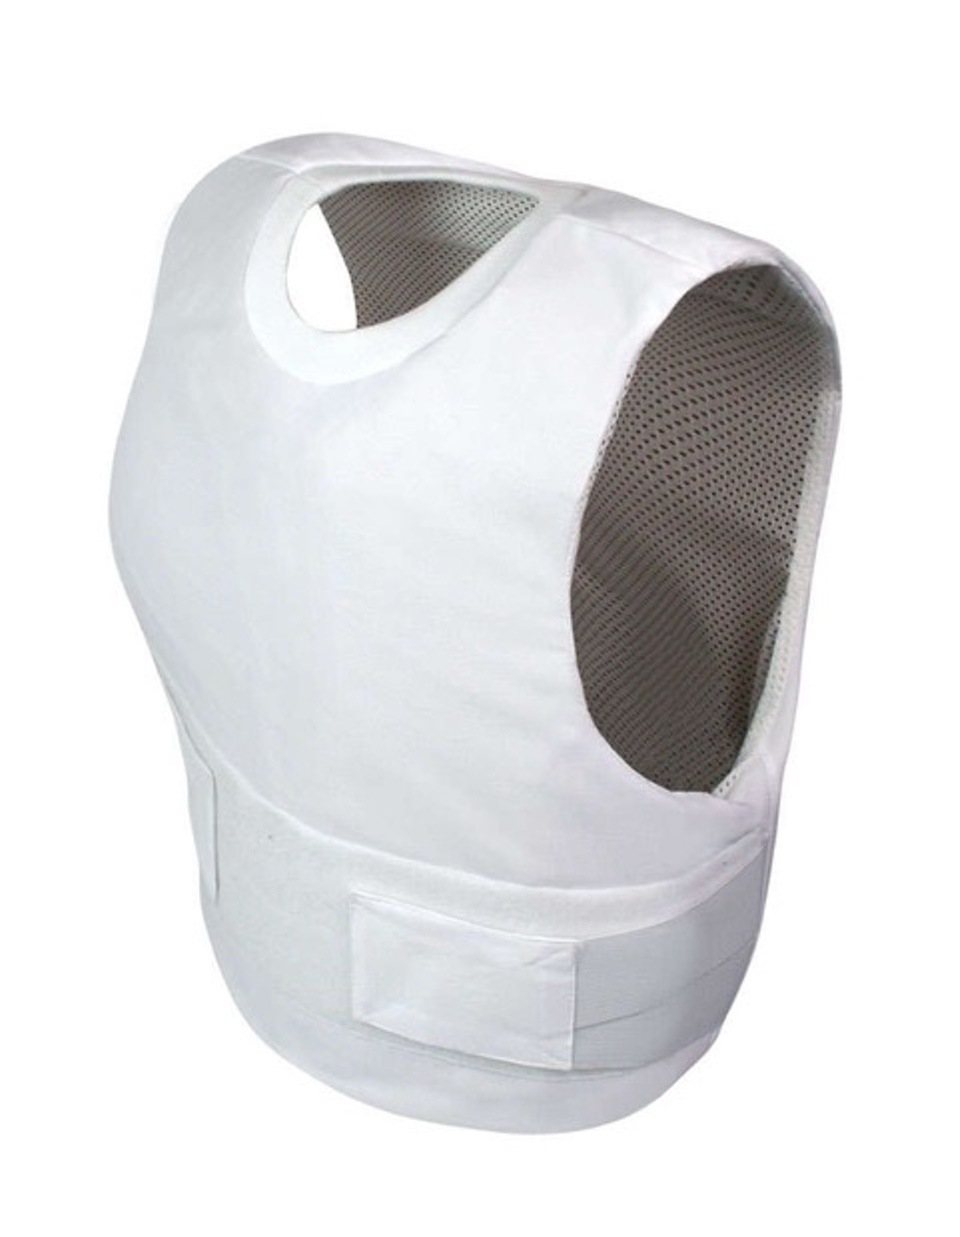 Female Coolmax Body armor